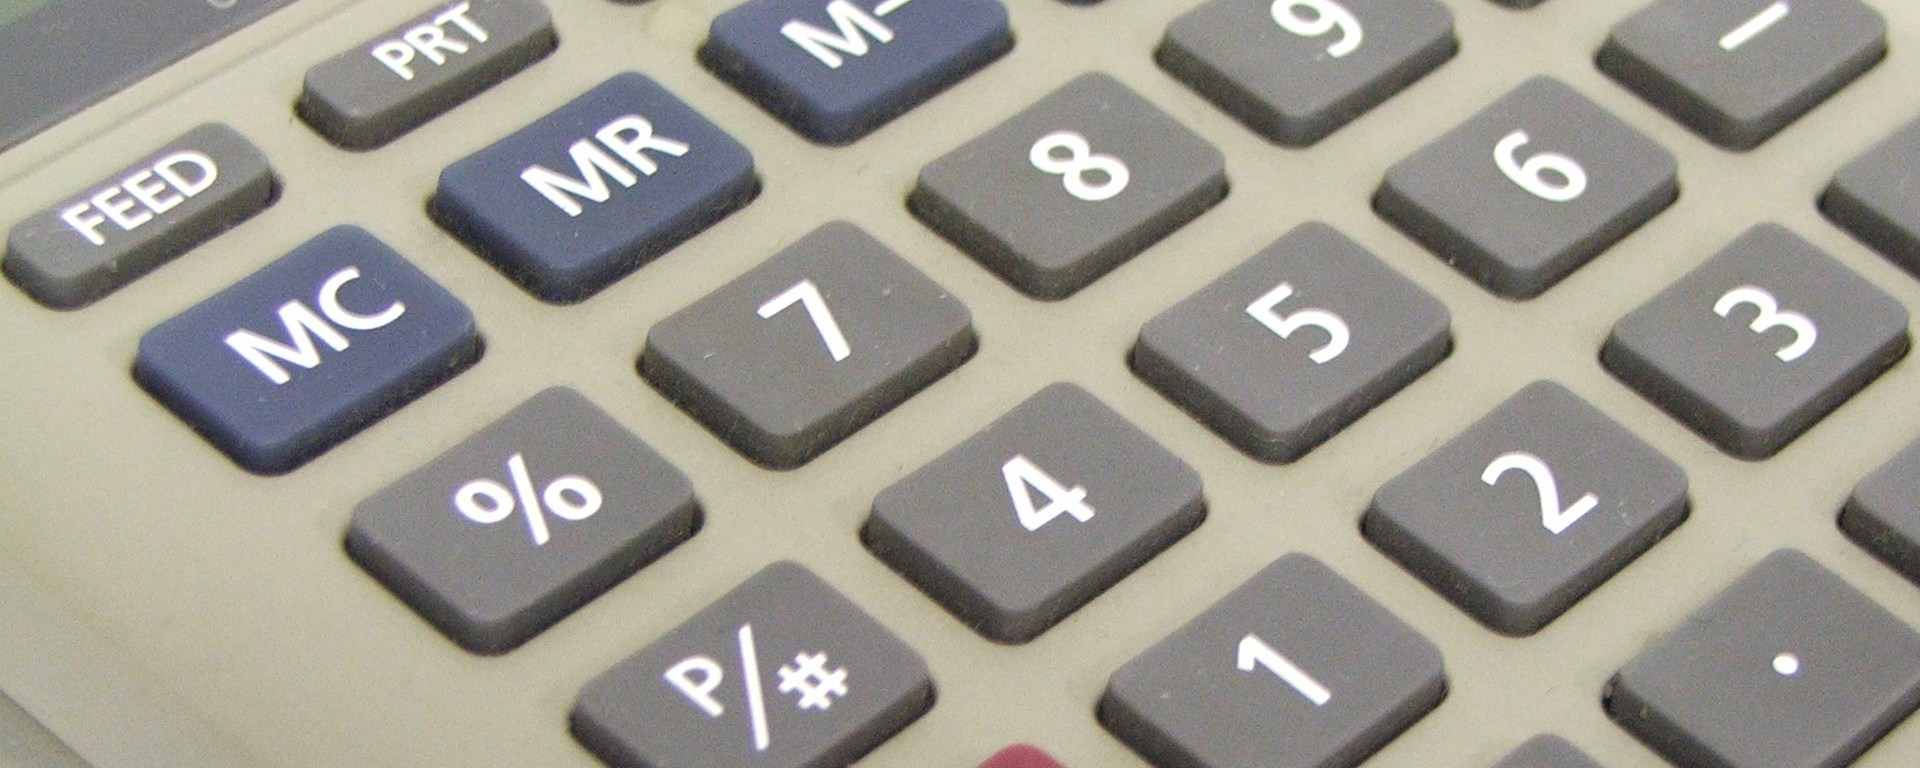 become an accountant in connecticut